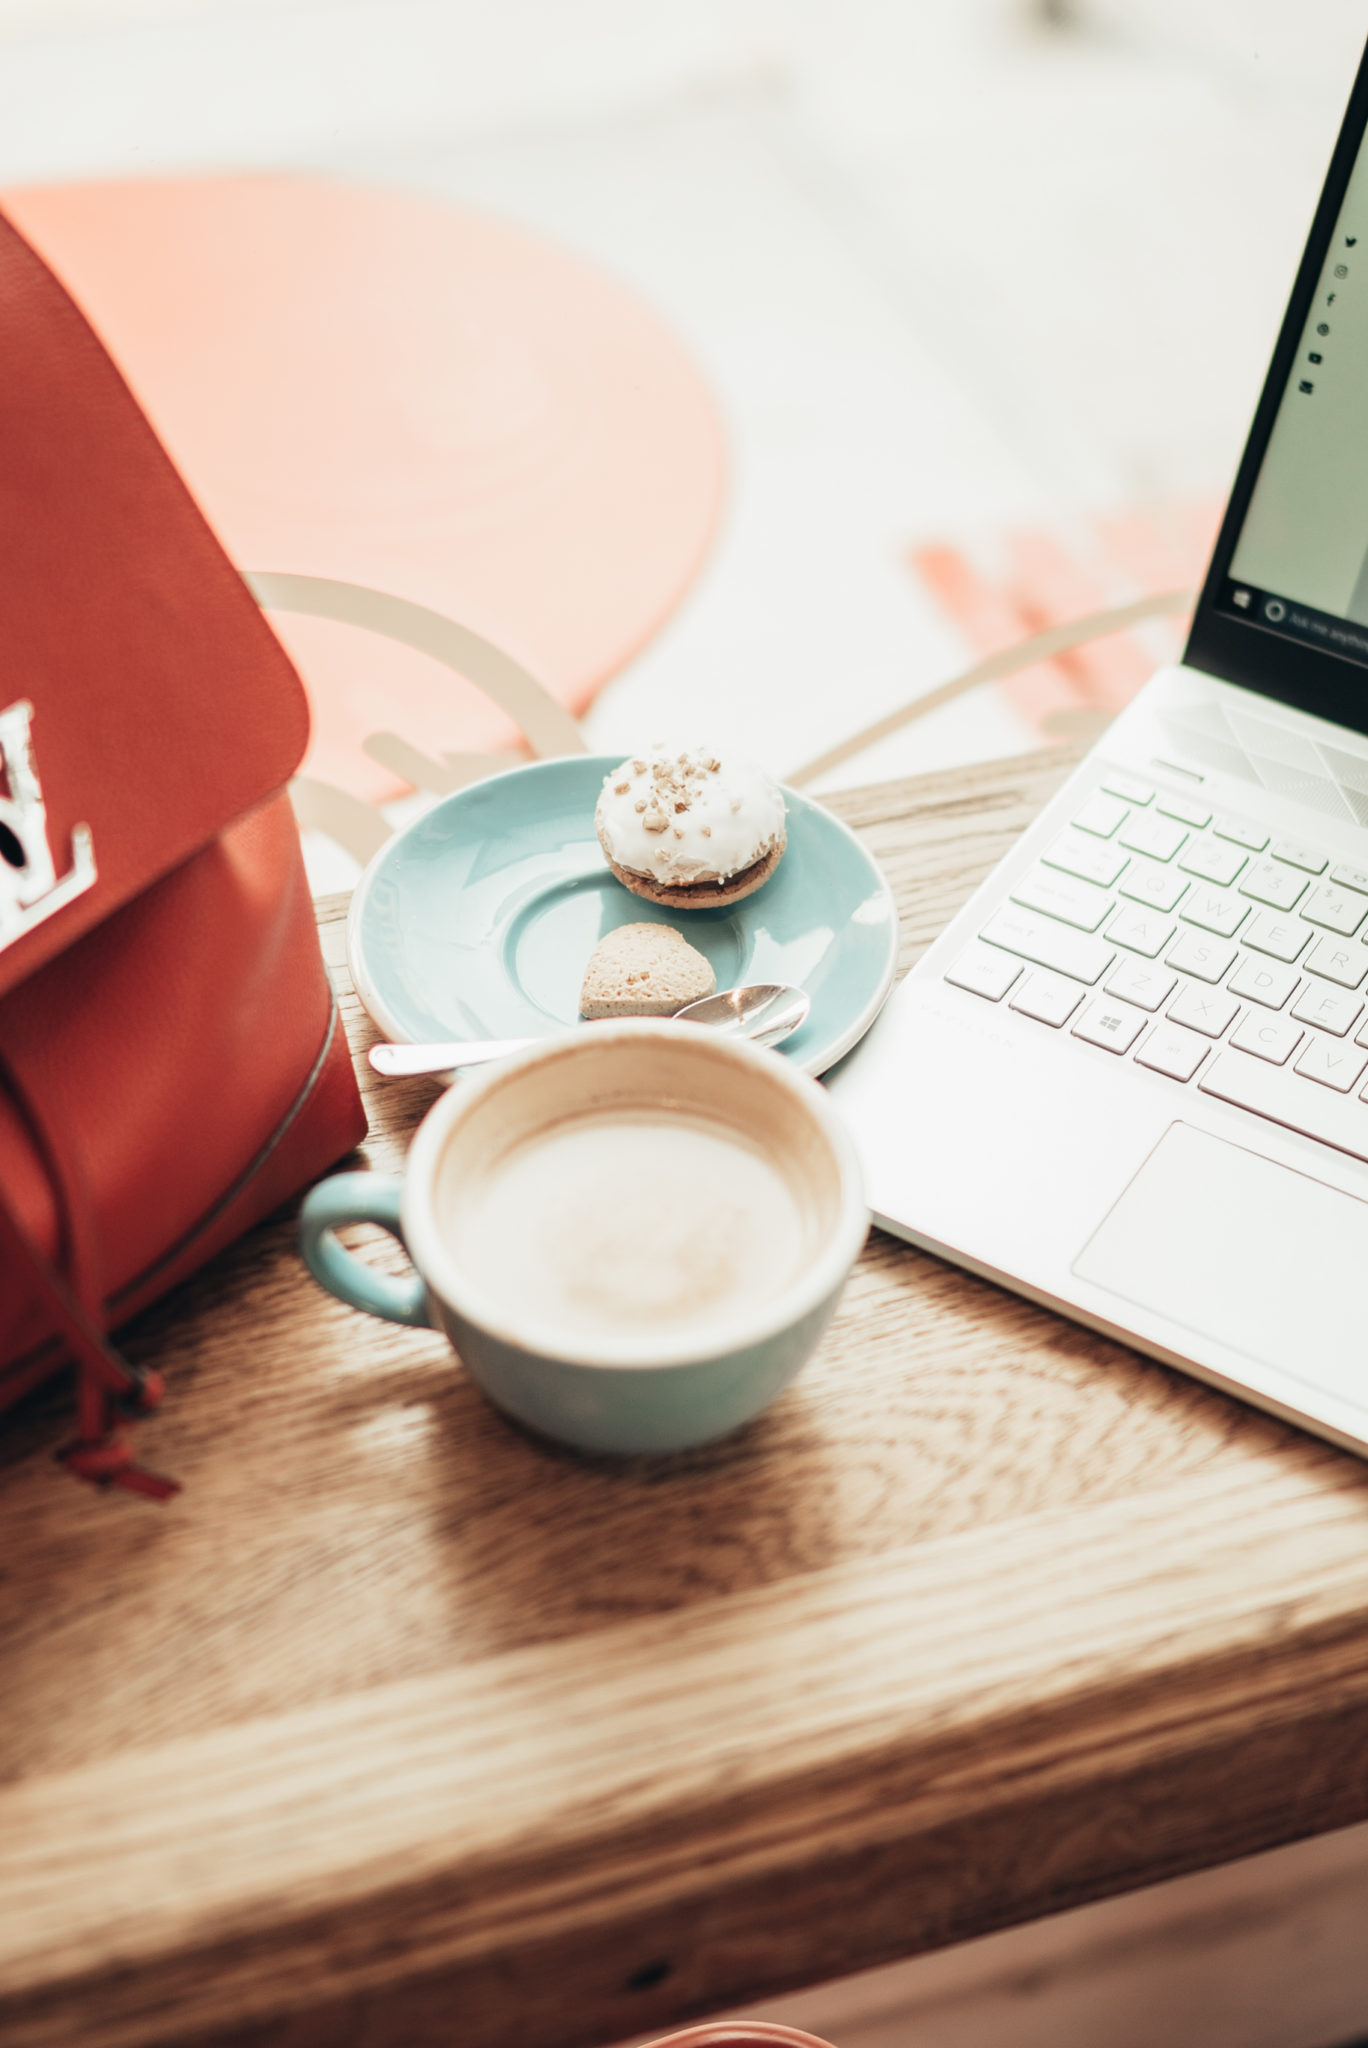 BLACK FRIDAY & CYBER MONDAY DEALS AND DISCOUNT CODES 2019 by popular San Francisco life and style blog, Just Add Glam: image of a cappuccino, a plate of cookies, and an open laptop.